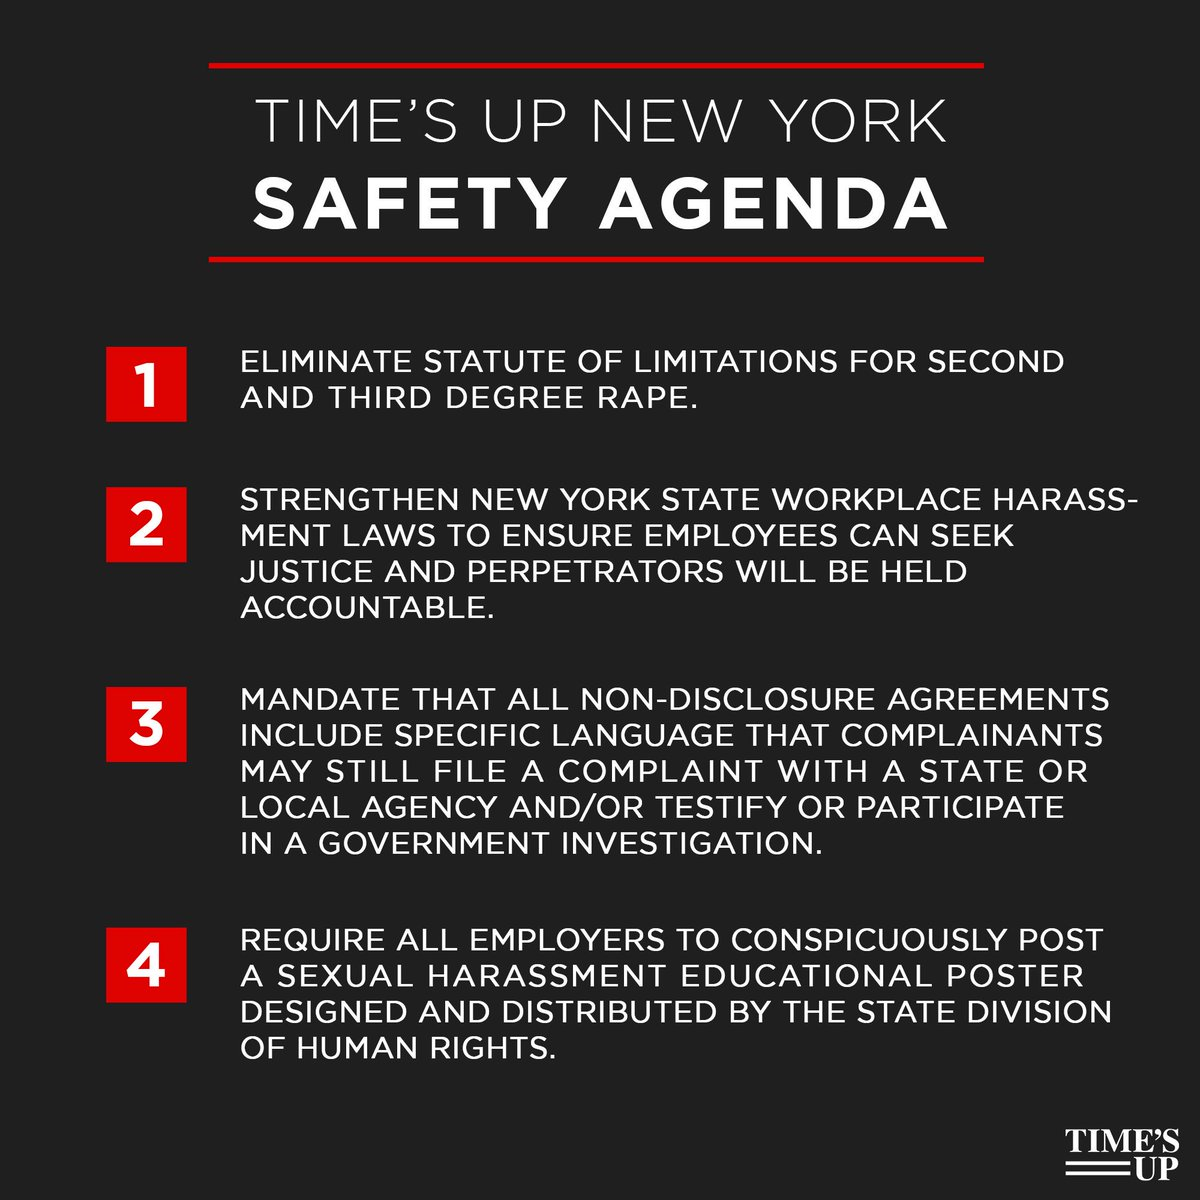 🚨Today @timesupnw joined  @NYGovCuomoin announcing the  #TIMESUPNew York Safety Agenda.   Thank you, Gov. Cuomo for your leadership! And we urge NY State Legislature to pass this agenda as soon as possible.